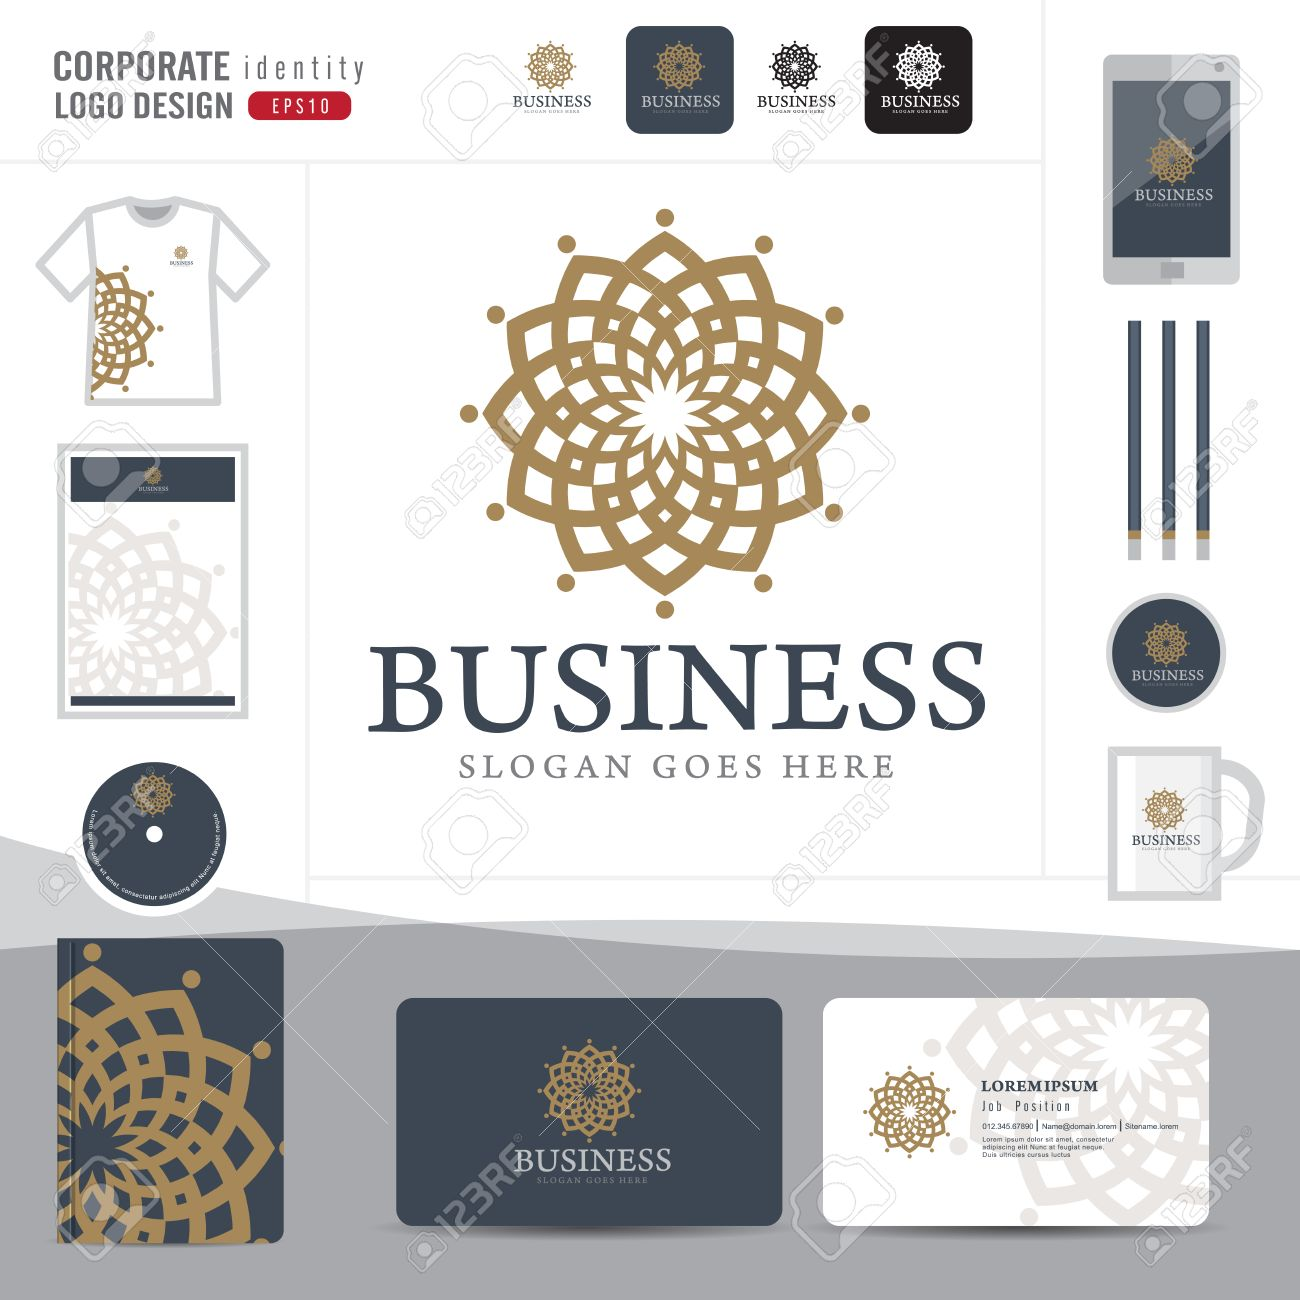 Law logo,law firm,law office,law Logotype corporate identity template,Corporate identity,vector illustrator - 46178887